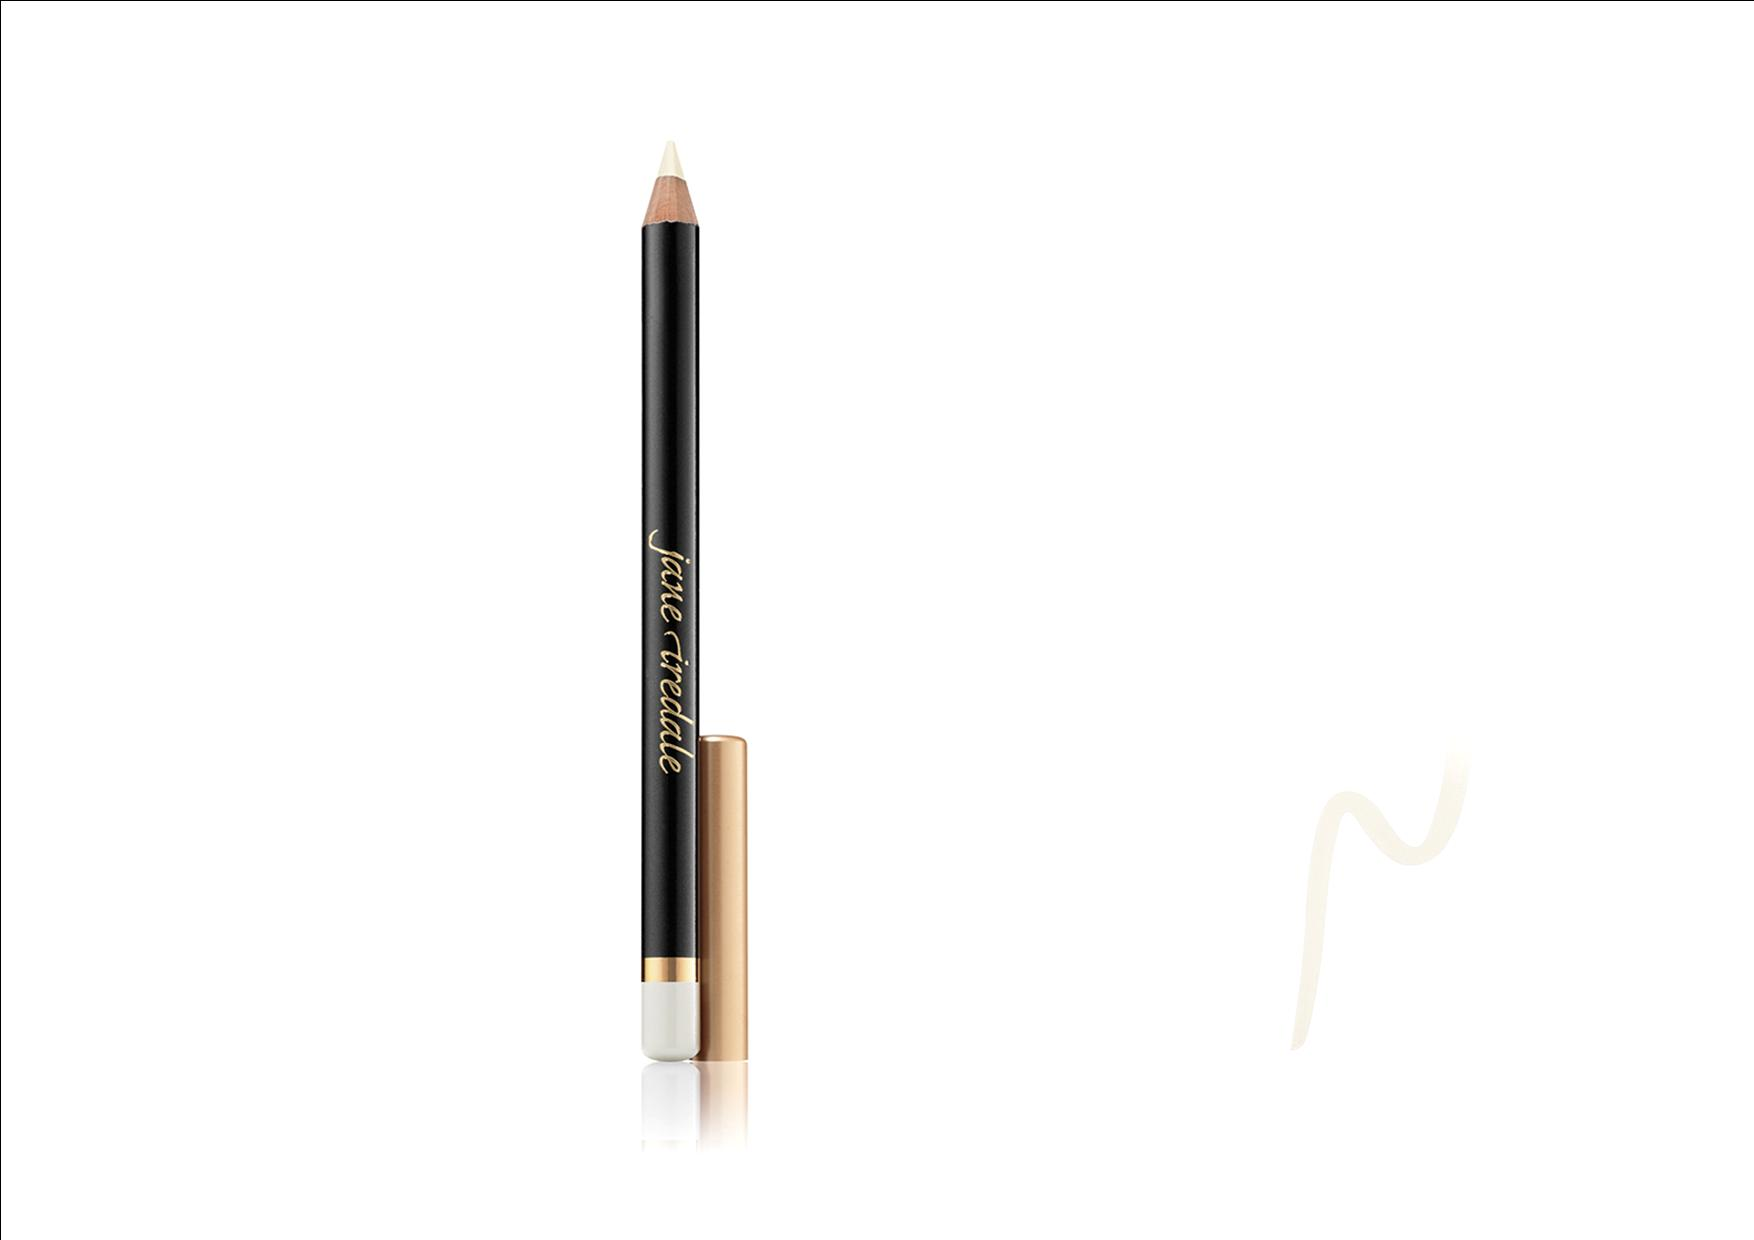 Jane Iredale Eye Pencil White